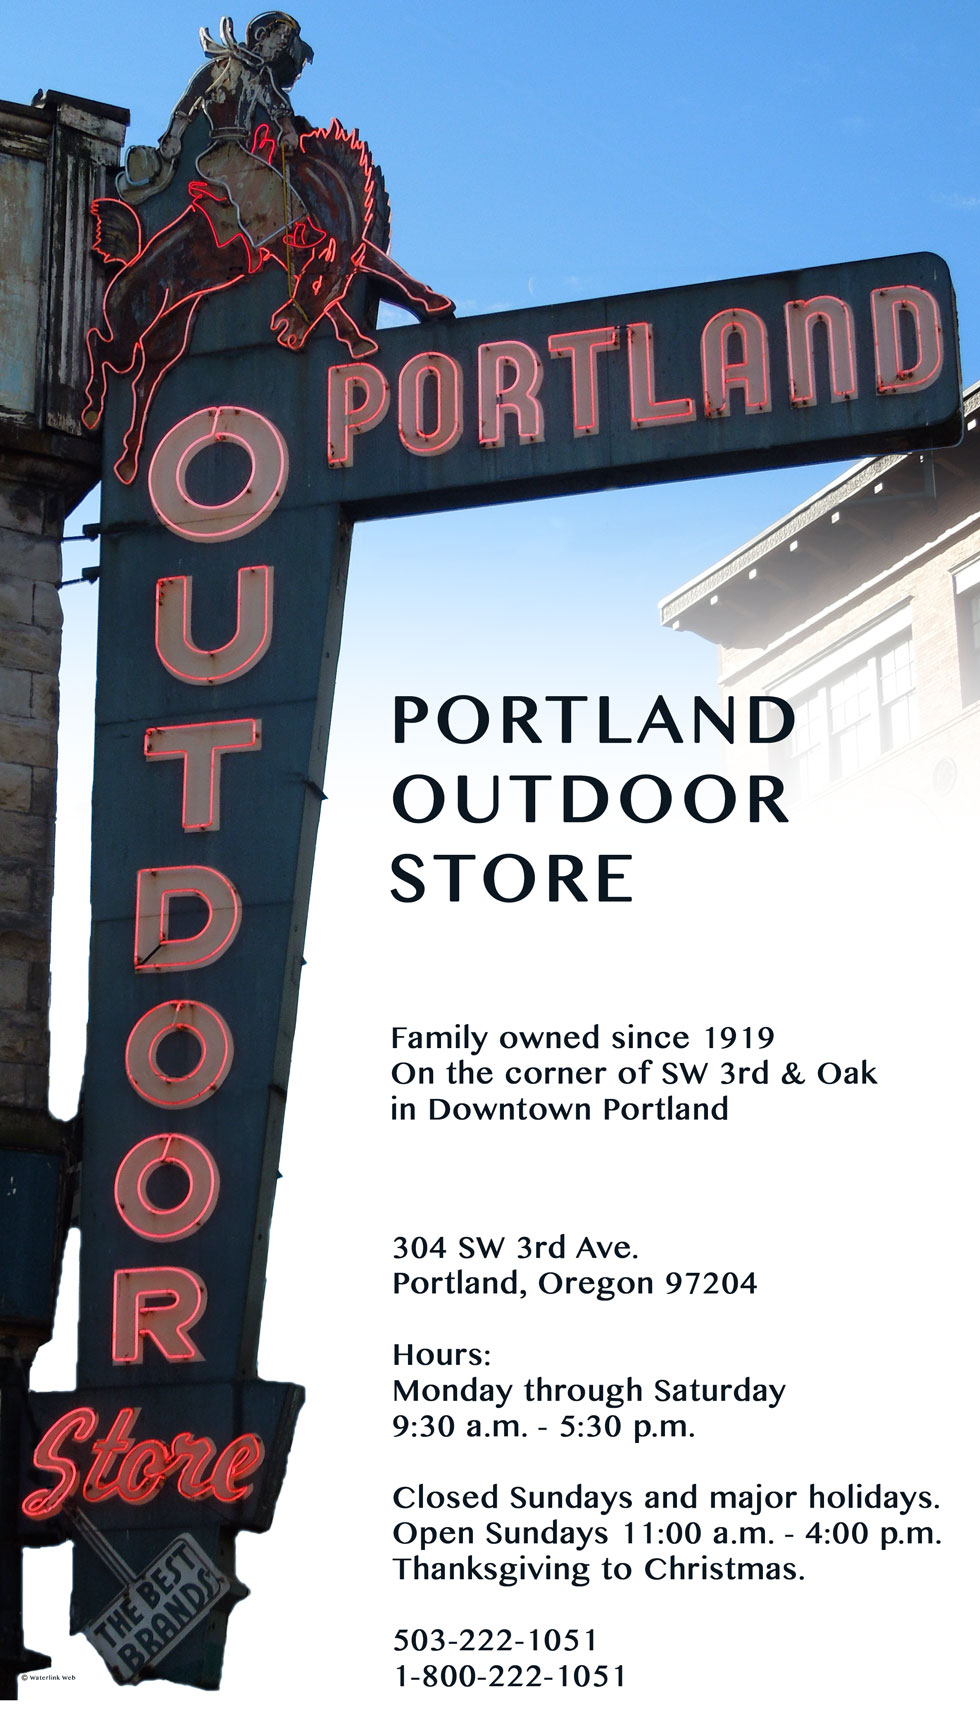 Portland Outdoor Store's iconic sign showing a bucking bronco and cowboy, location SW 3rd and Oak in Downtown Portland, Oregon